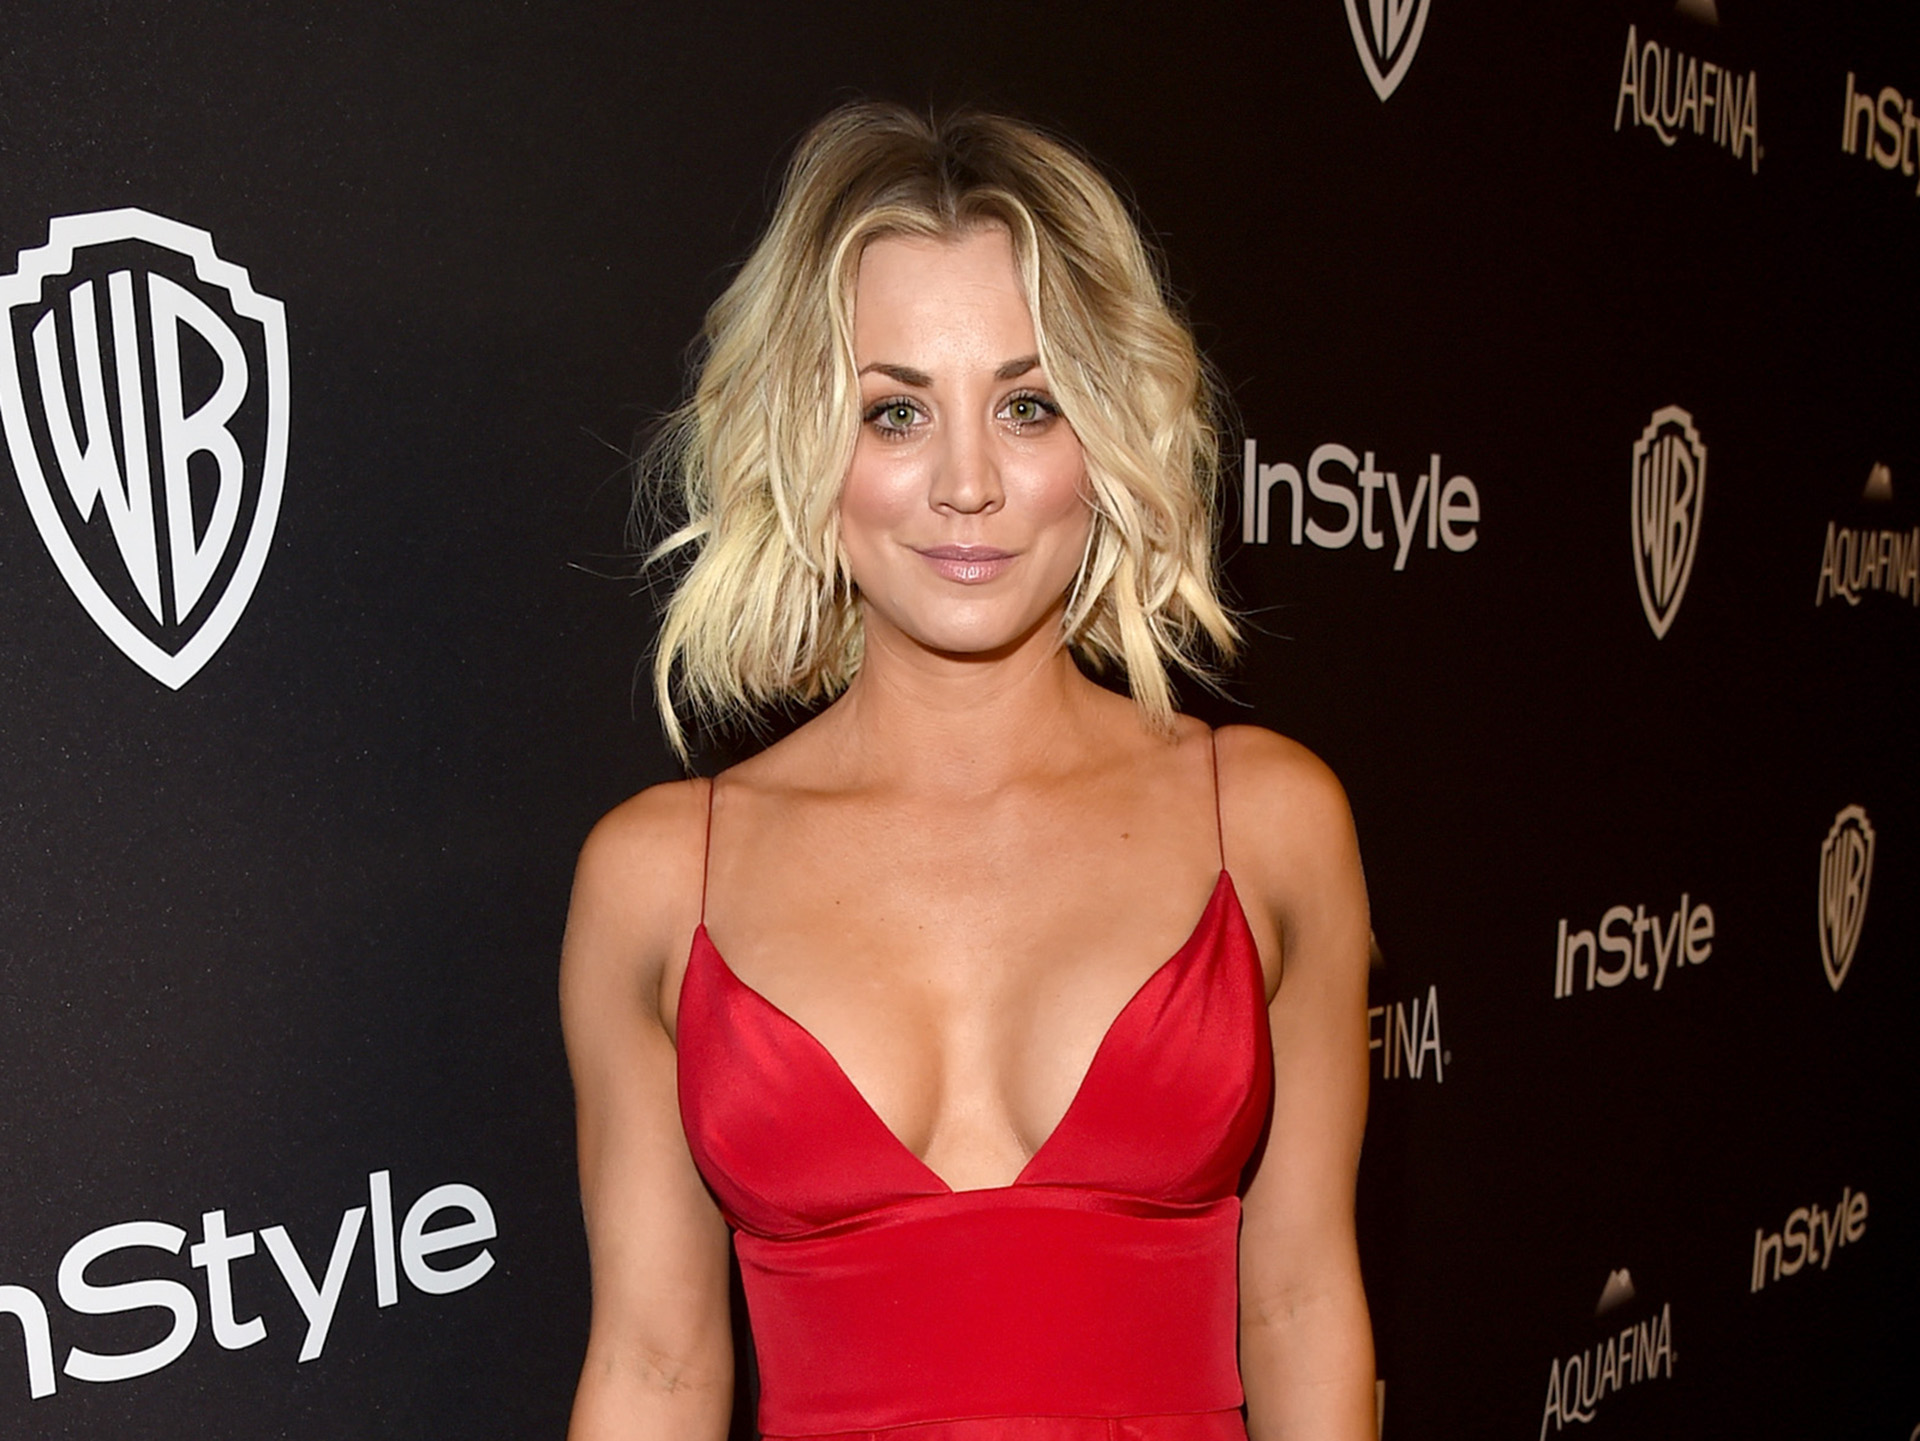 Kaley Cuoco Reveals She's Had Her Nose and Breasts Done